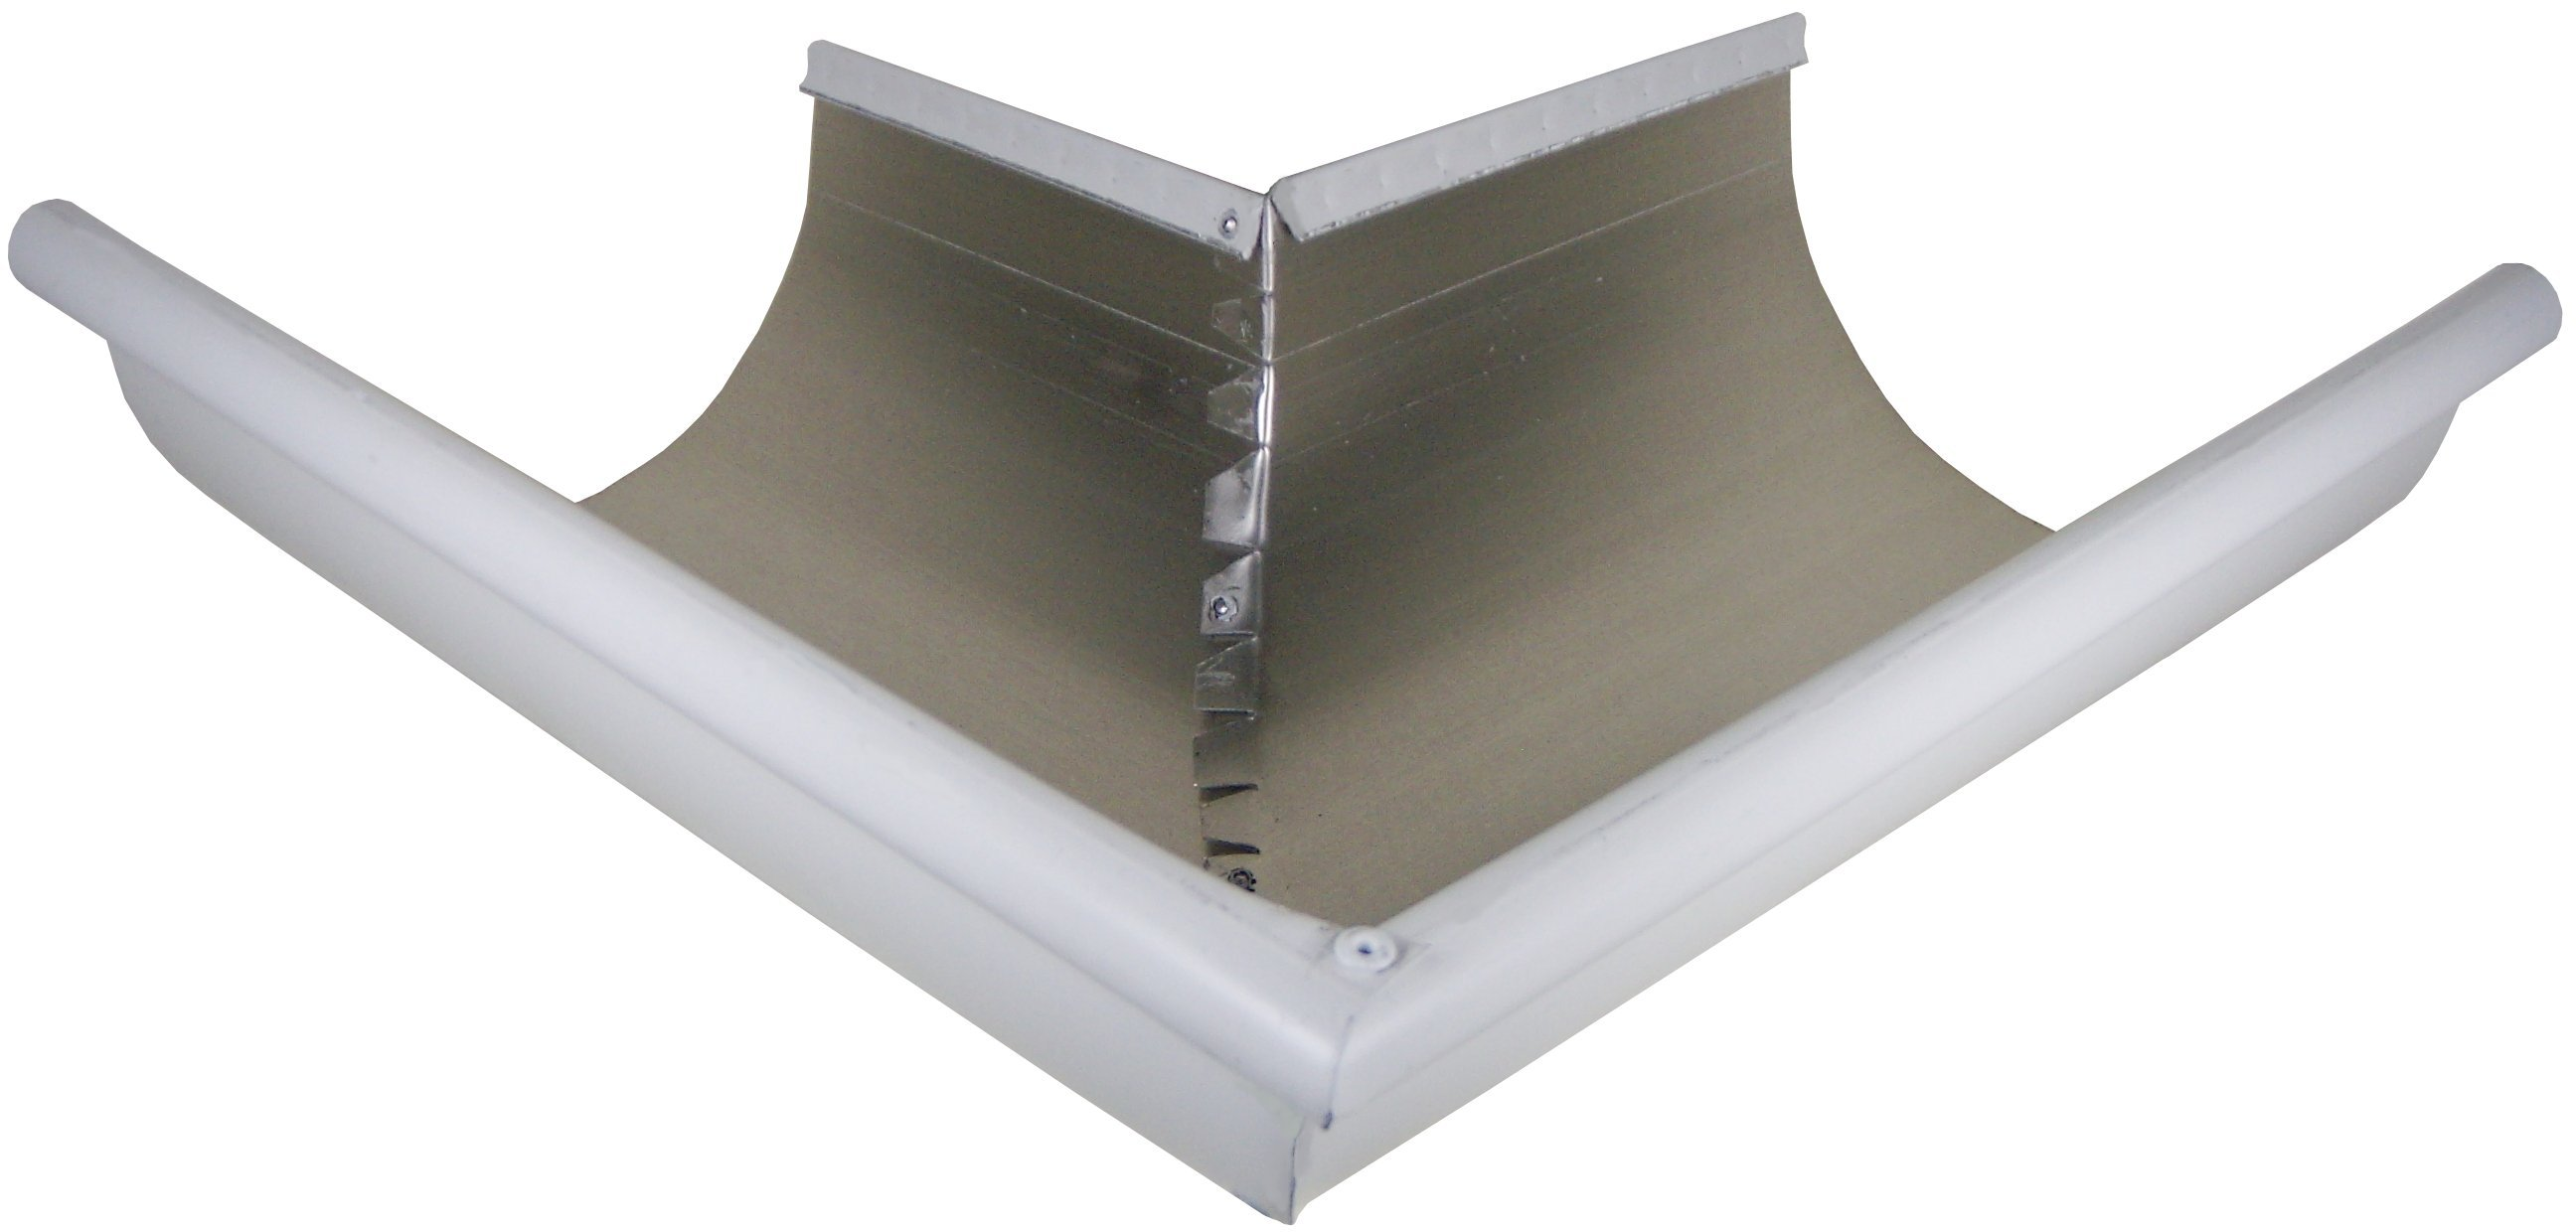 Miters Or Corner Pieces Are The Gutter Fittings That